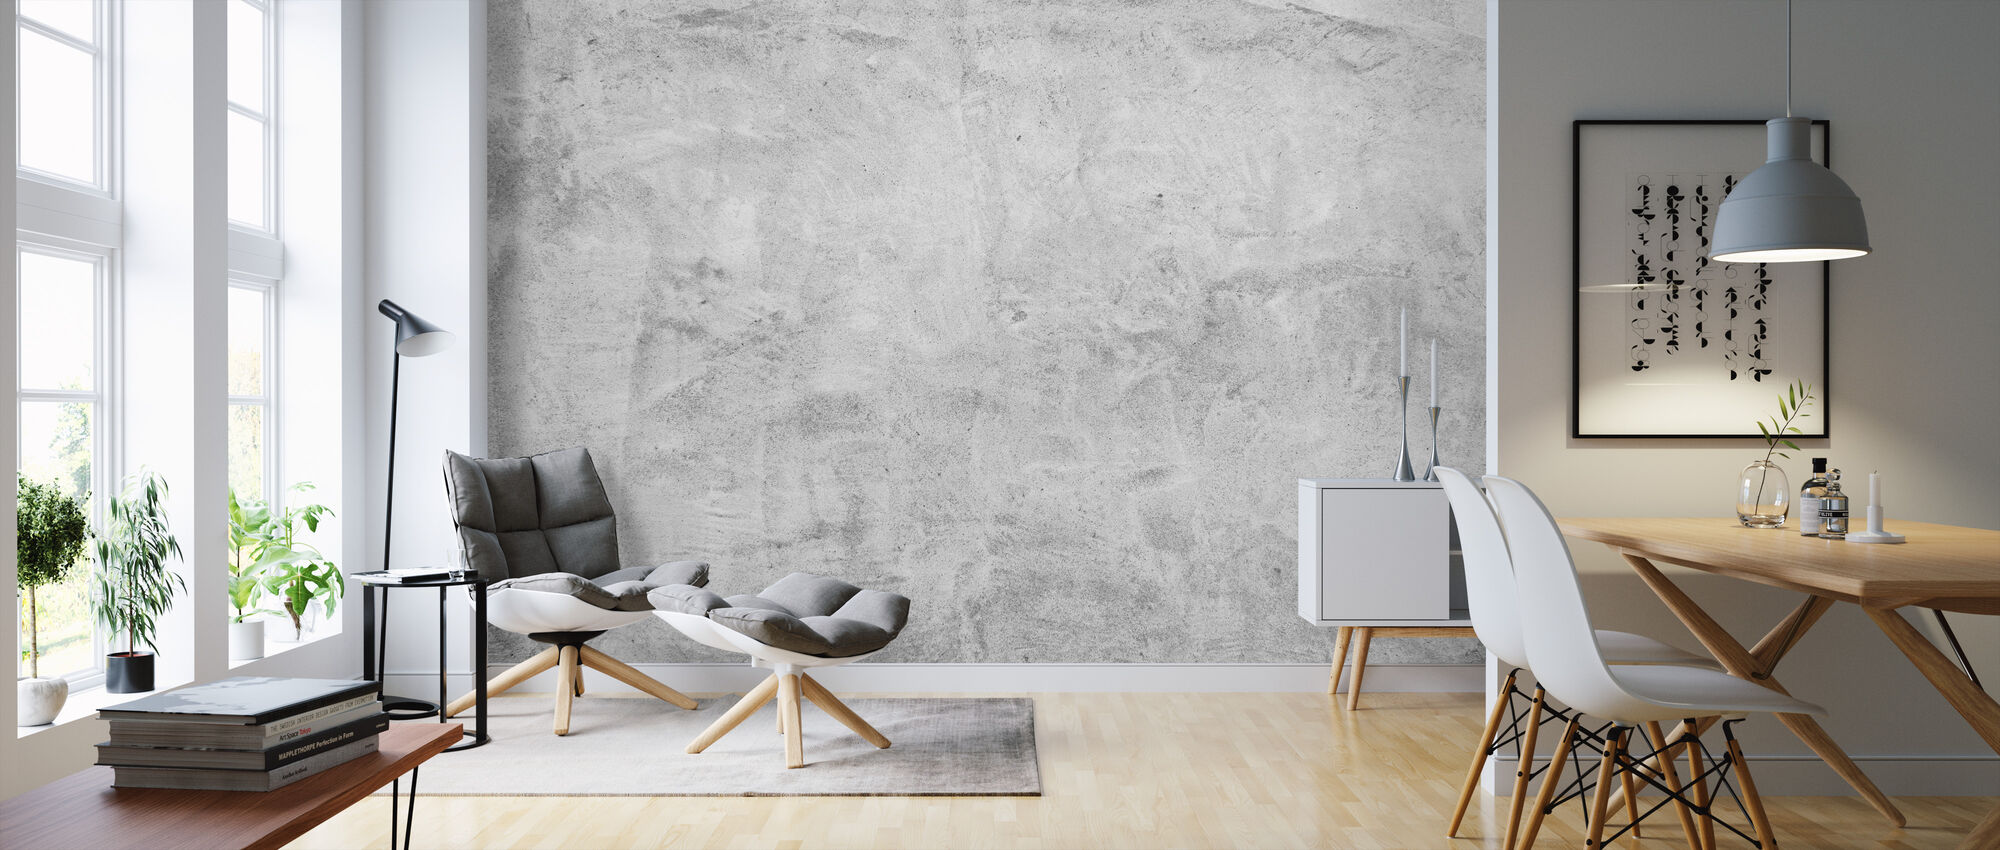 Scrubbed Concrete Wall - Wallpaper - Living Room